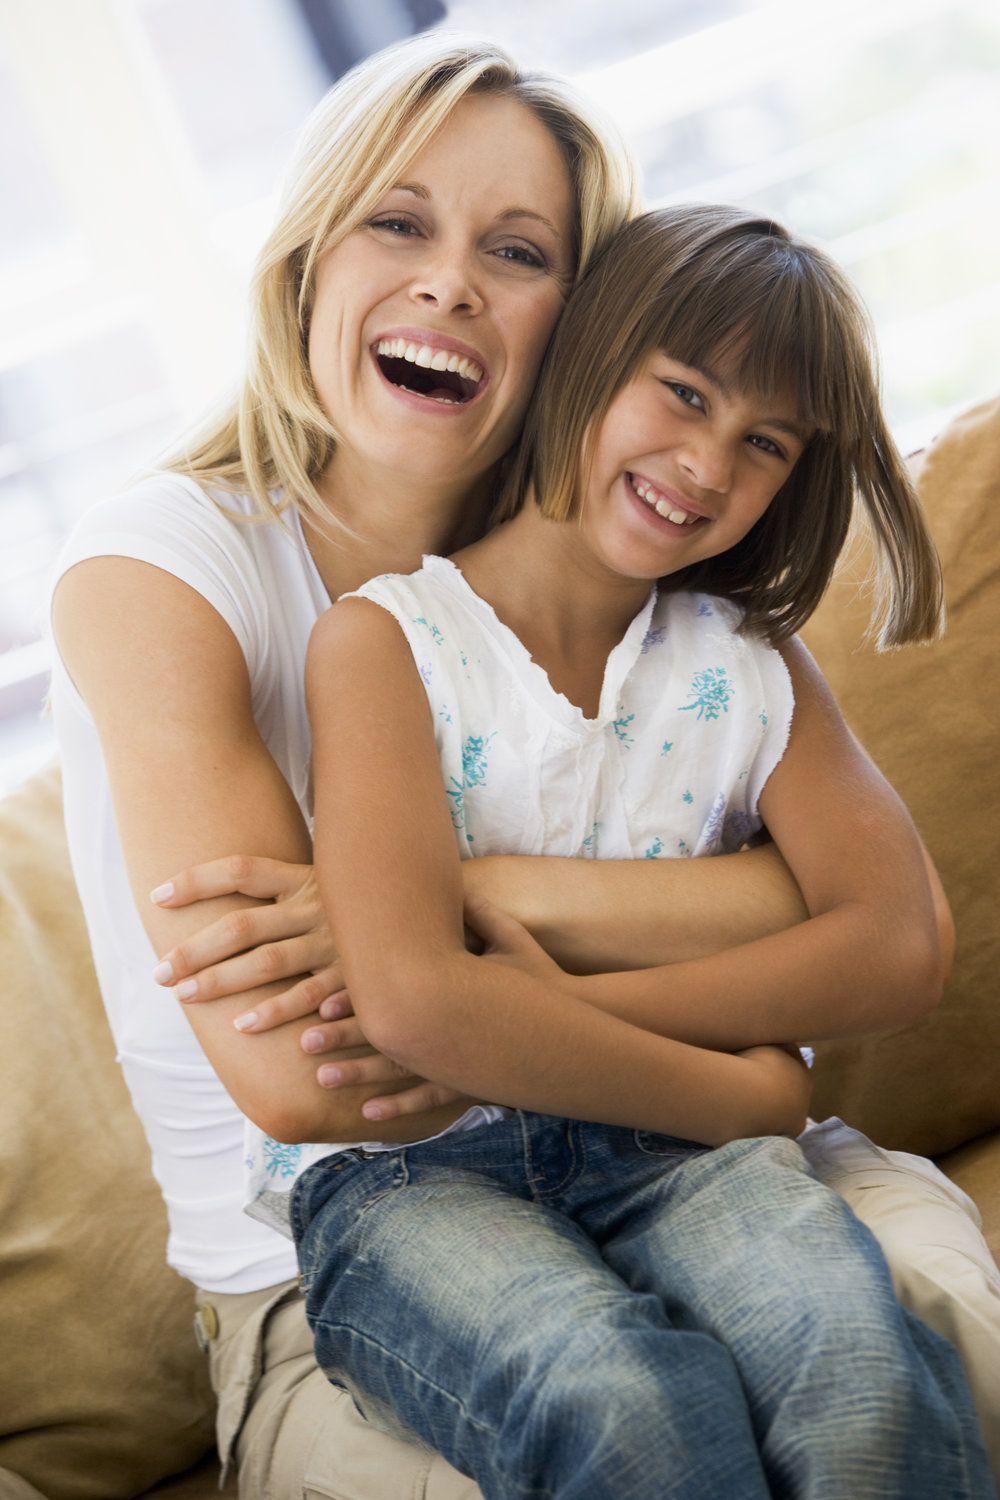 woman-and-young-girl-sitting-in-living-room-smiling_BKxwtiRHi.jpg